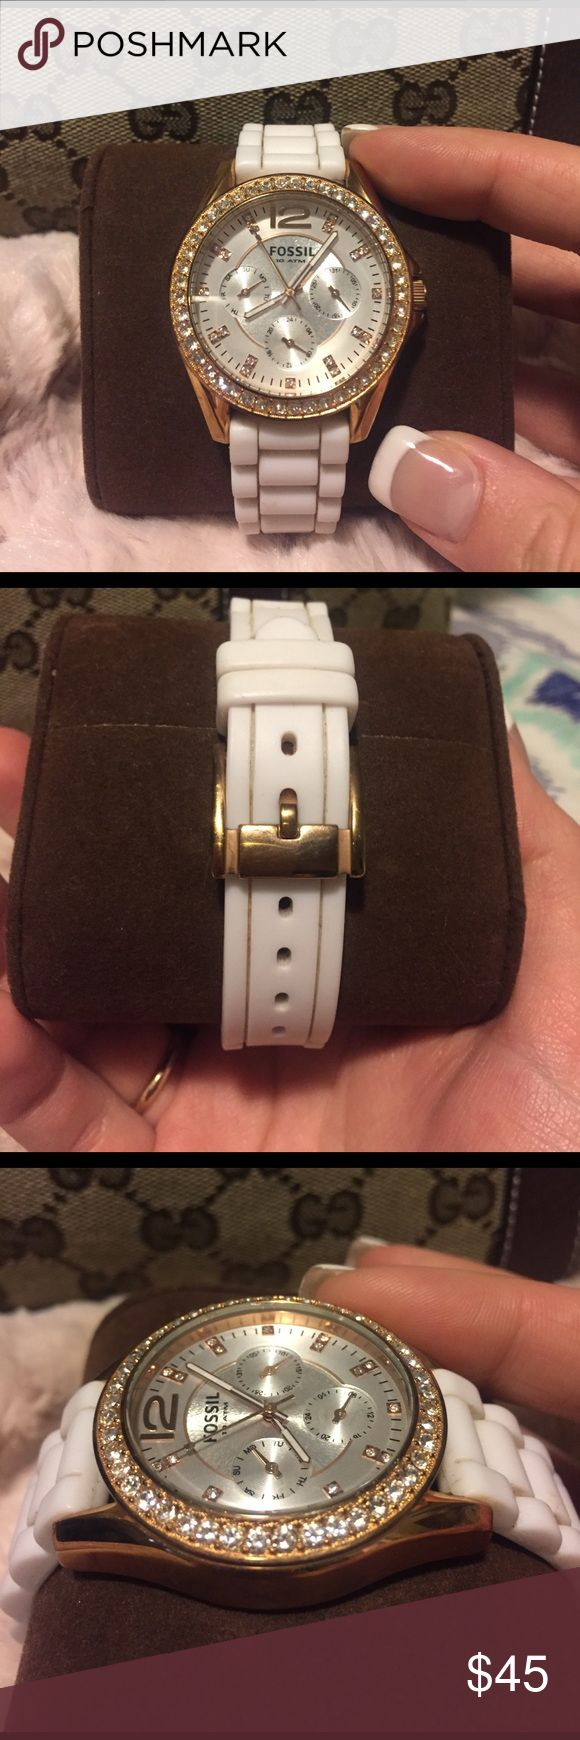 Women's fossil watch Gold watch face with pearly white inner-face and inlaid with crystal. White rubber band. Will fit most wrist sizes. Needs new watch battery to work. Watch face in perfect condition- band slightly used condition but easy to replace. Fossil Accessories Watches